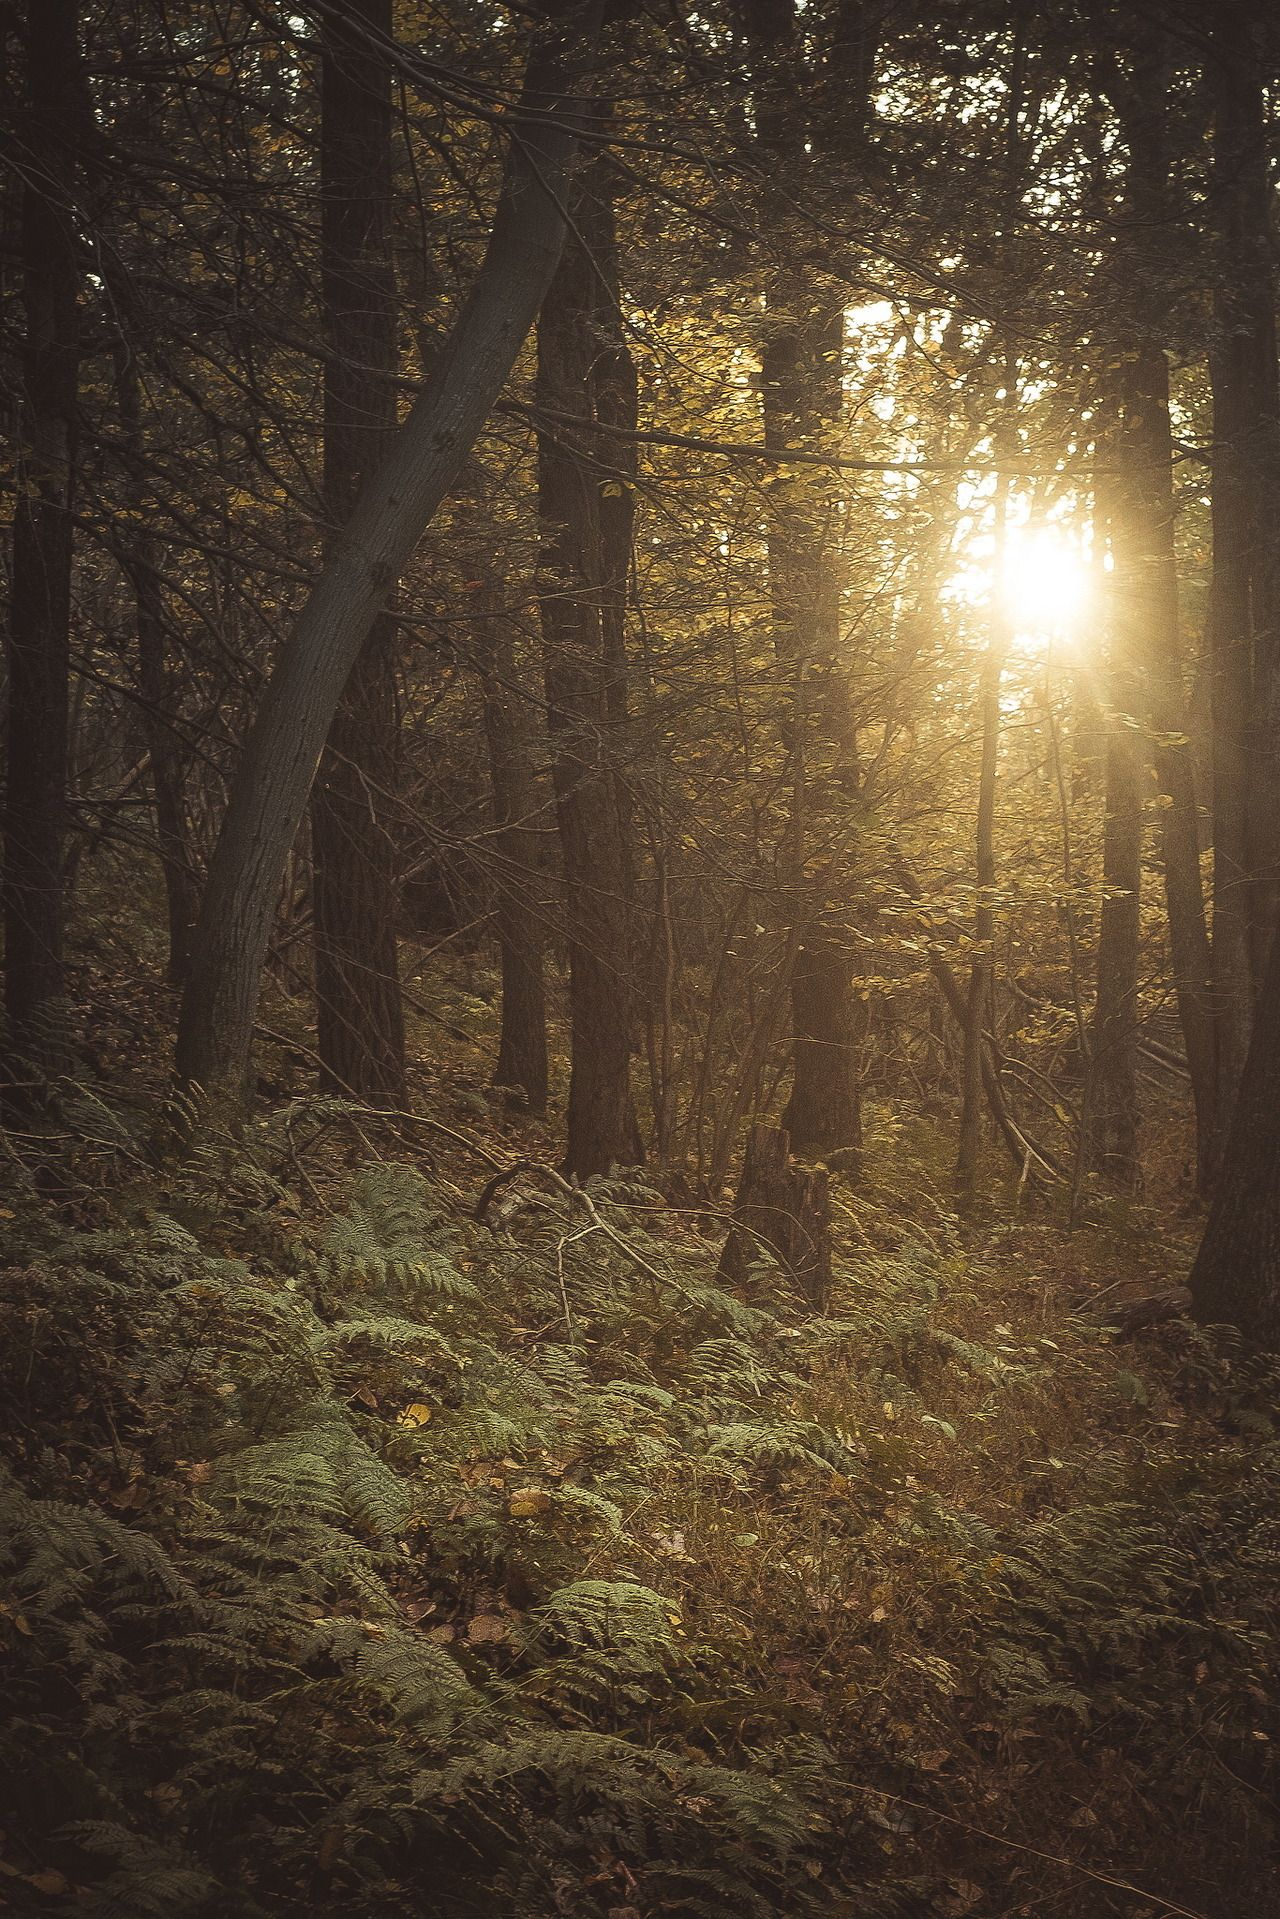 the woods - when we wander by (Colin Gallagher) | Website